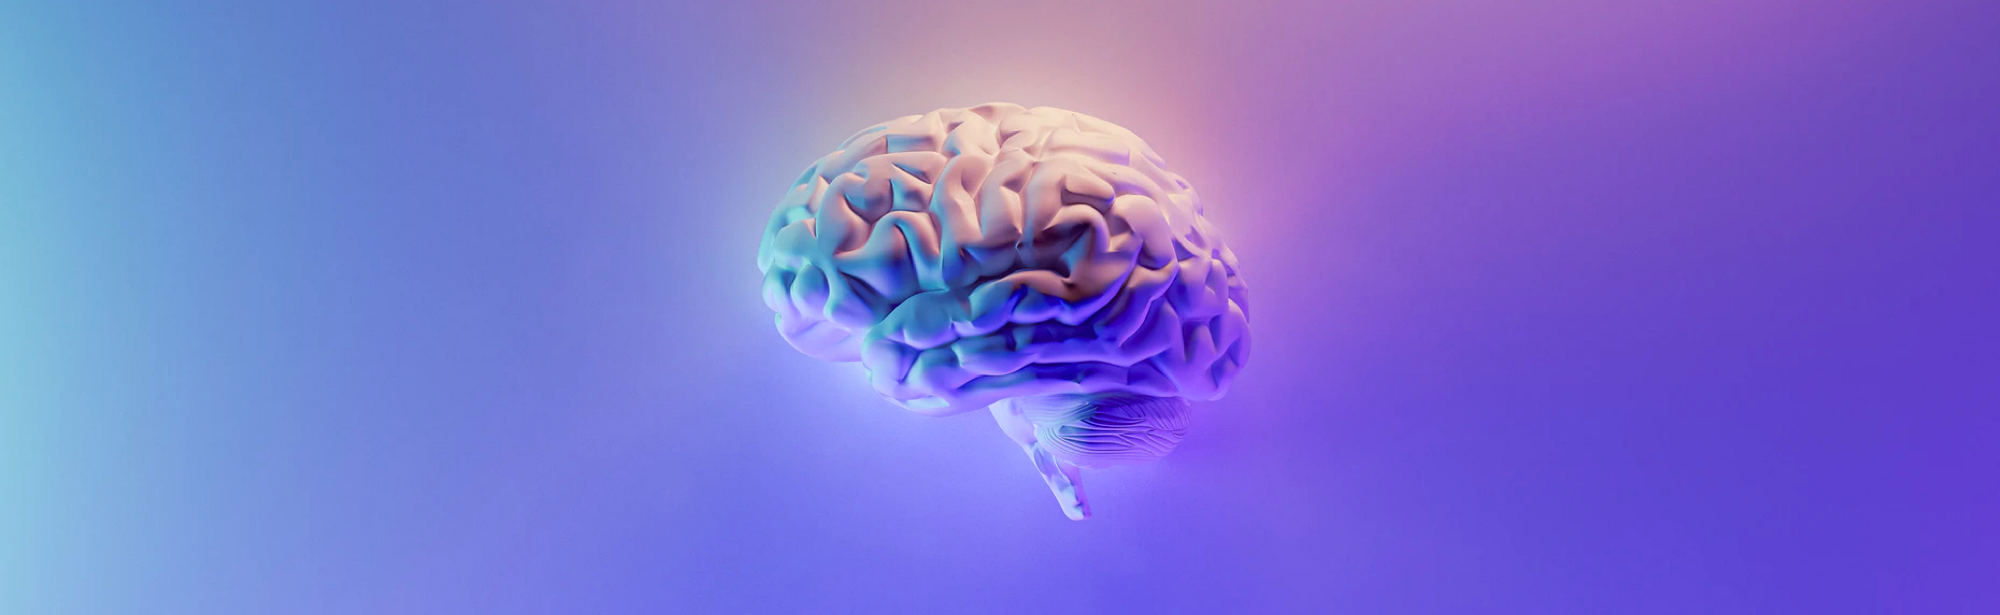 Image of a brain since all the decisions are made by our brain